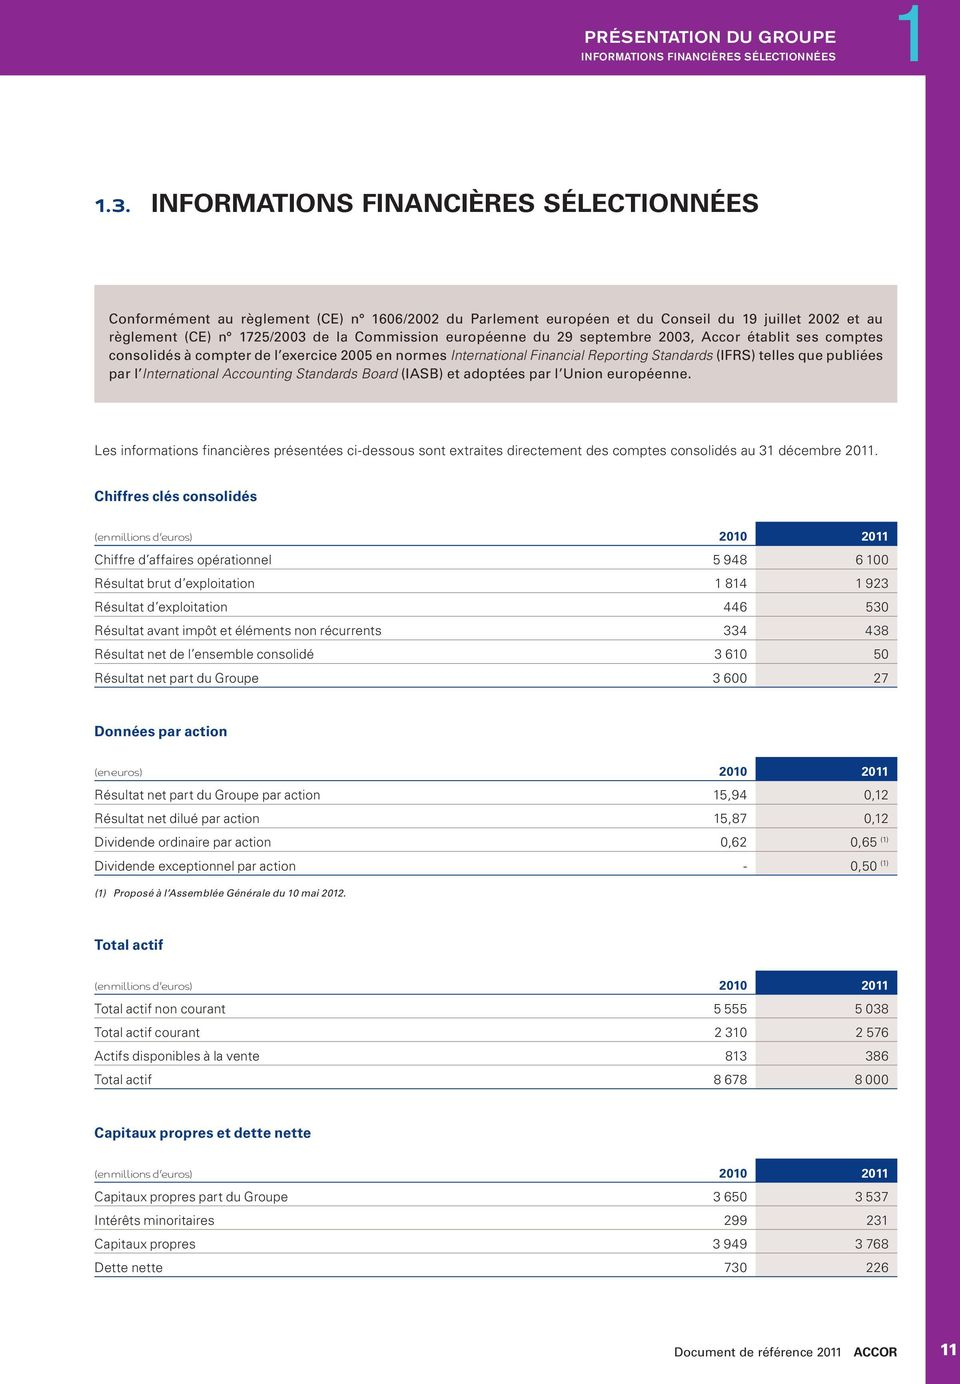 du 29 septembre 2003, Accor établit ses comptes consolidés à compter de l exercice 2005 en normes International Financial Reporting Standards (IFRS) telles que publiées par l International Accounting